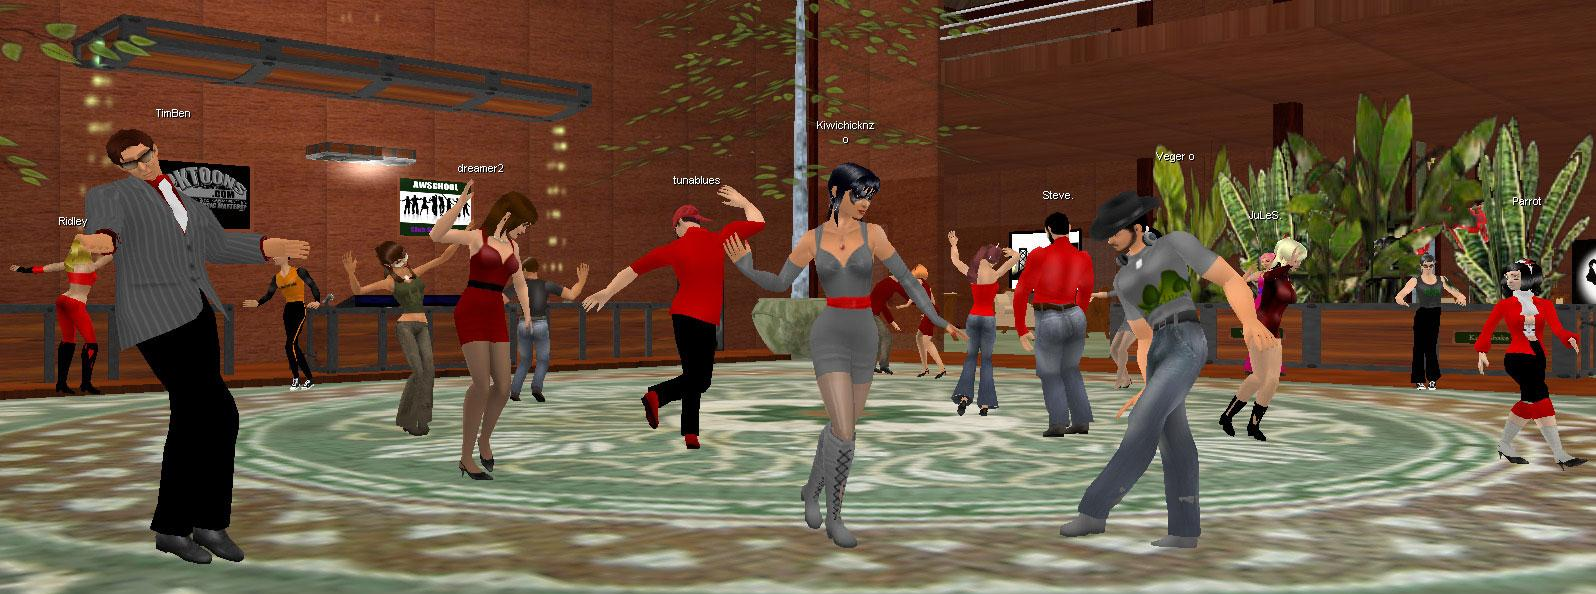 Active Worlds Park Party in Active Worlds ...